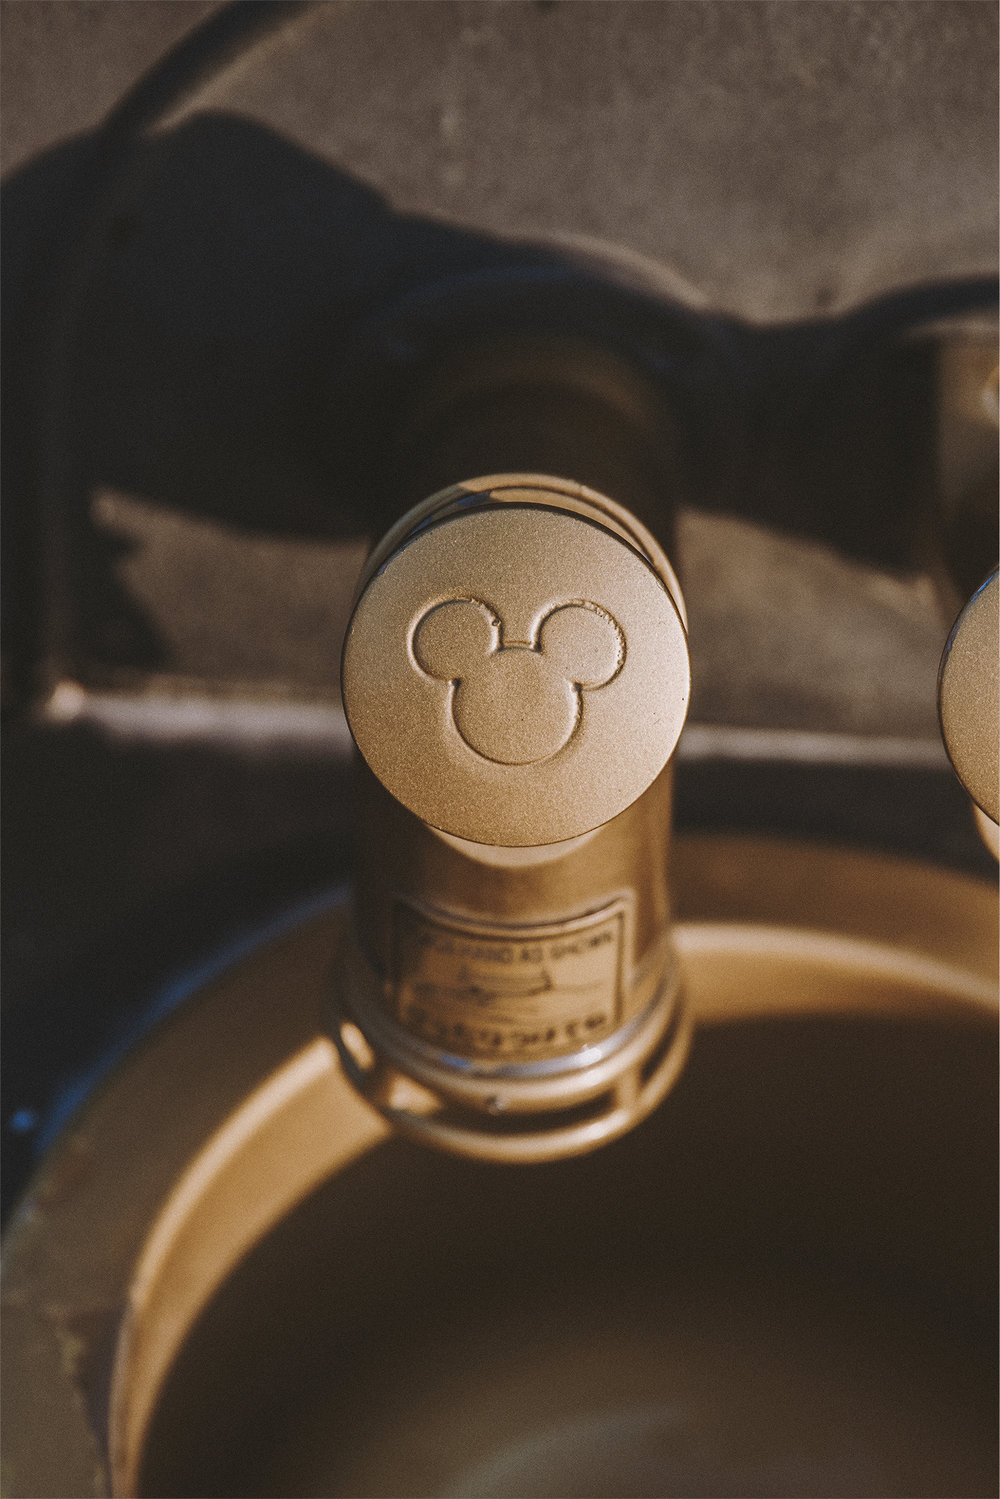 In 2016, we attempted using the Mickey Mouse shaped soap dispenser and failed. Of course, we did this at night and had no idea what we were doing. This time around we figured it out.